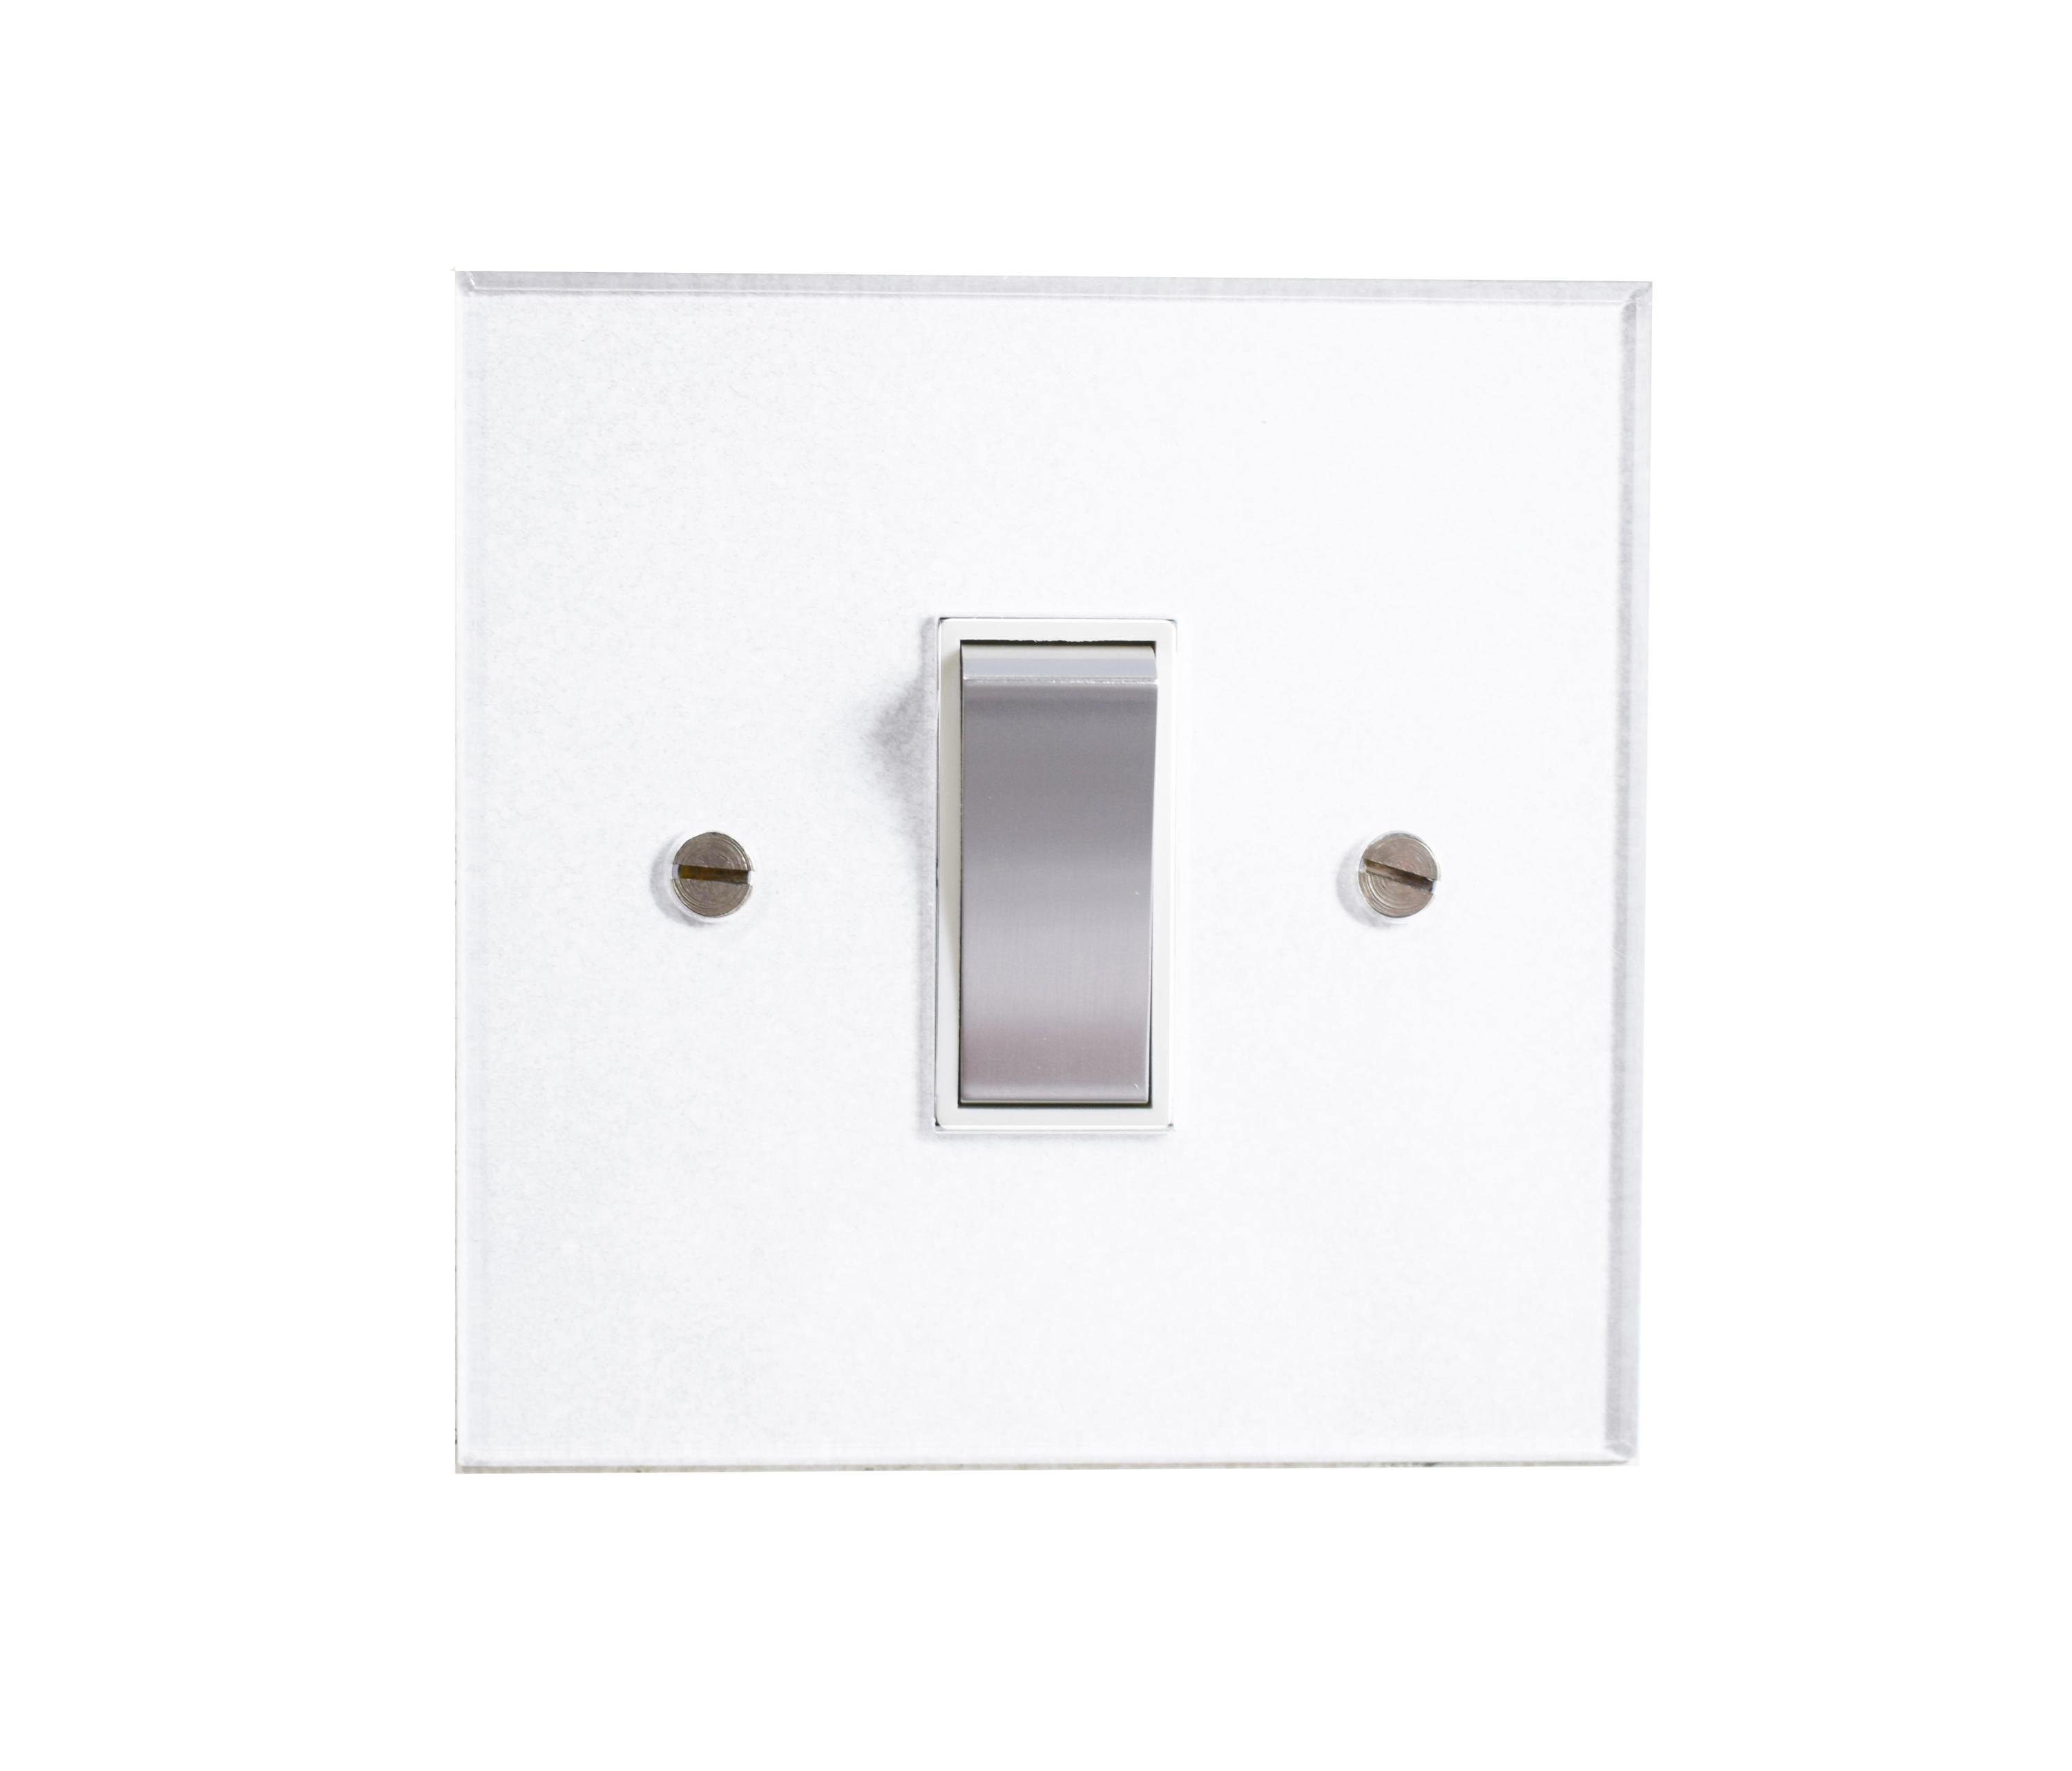 Rocker Switch Plate Amusing Invisible Lightswitch® With Stainless Steel Rocker  Twoway Design Ideas